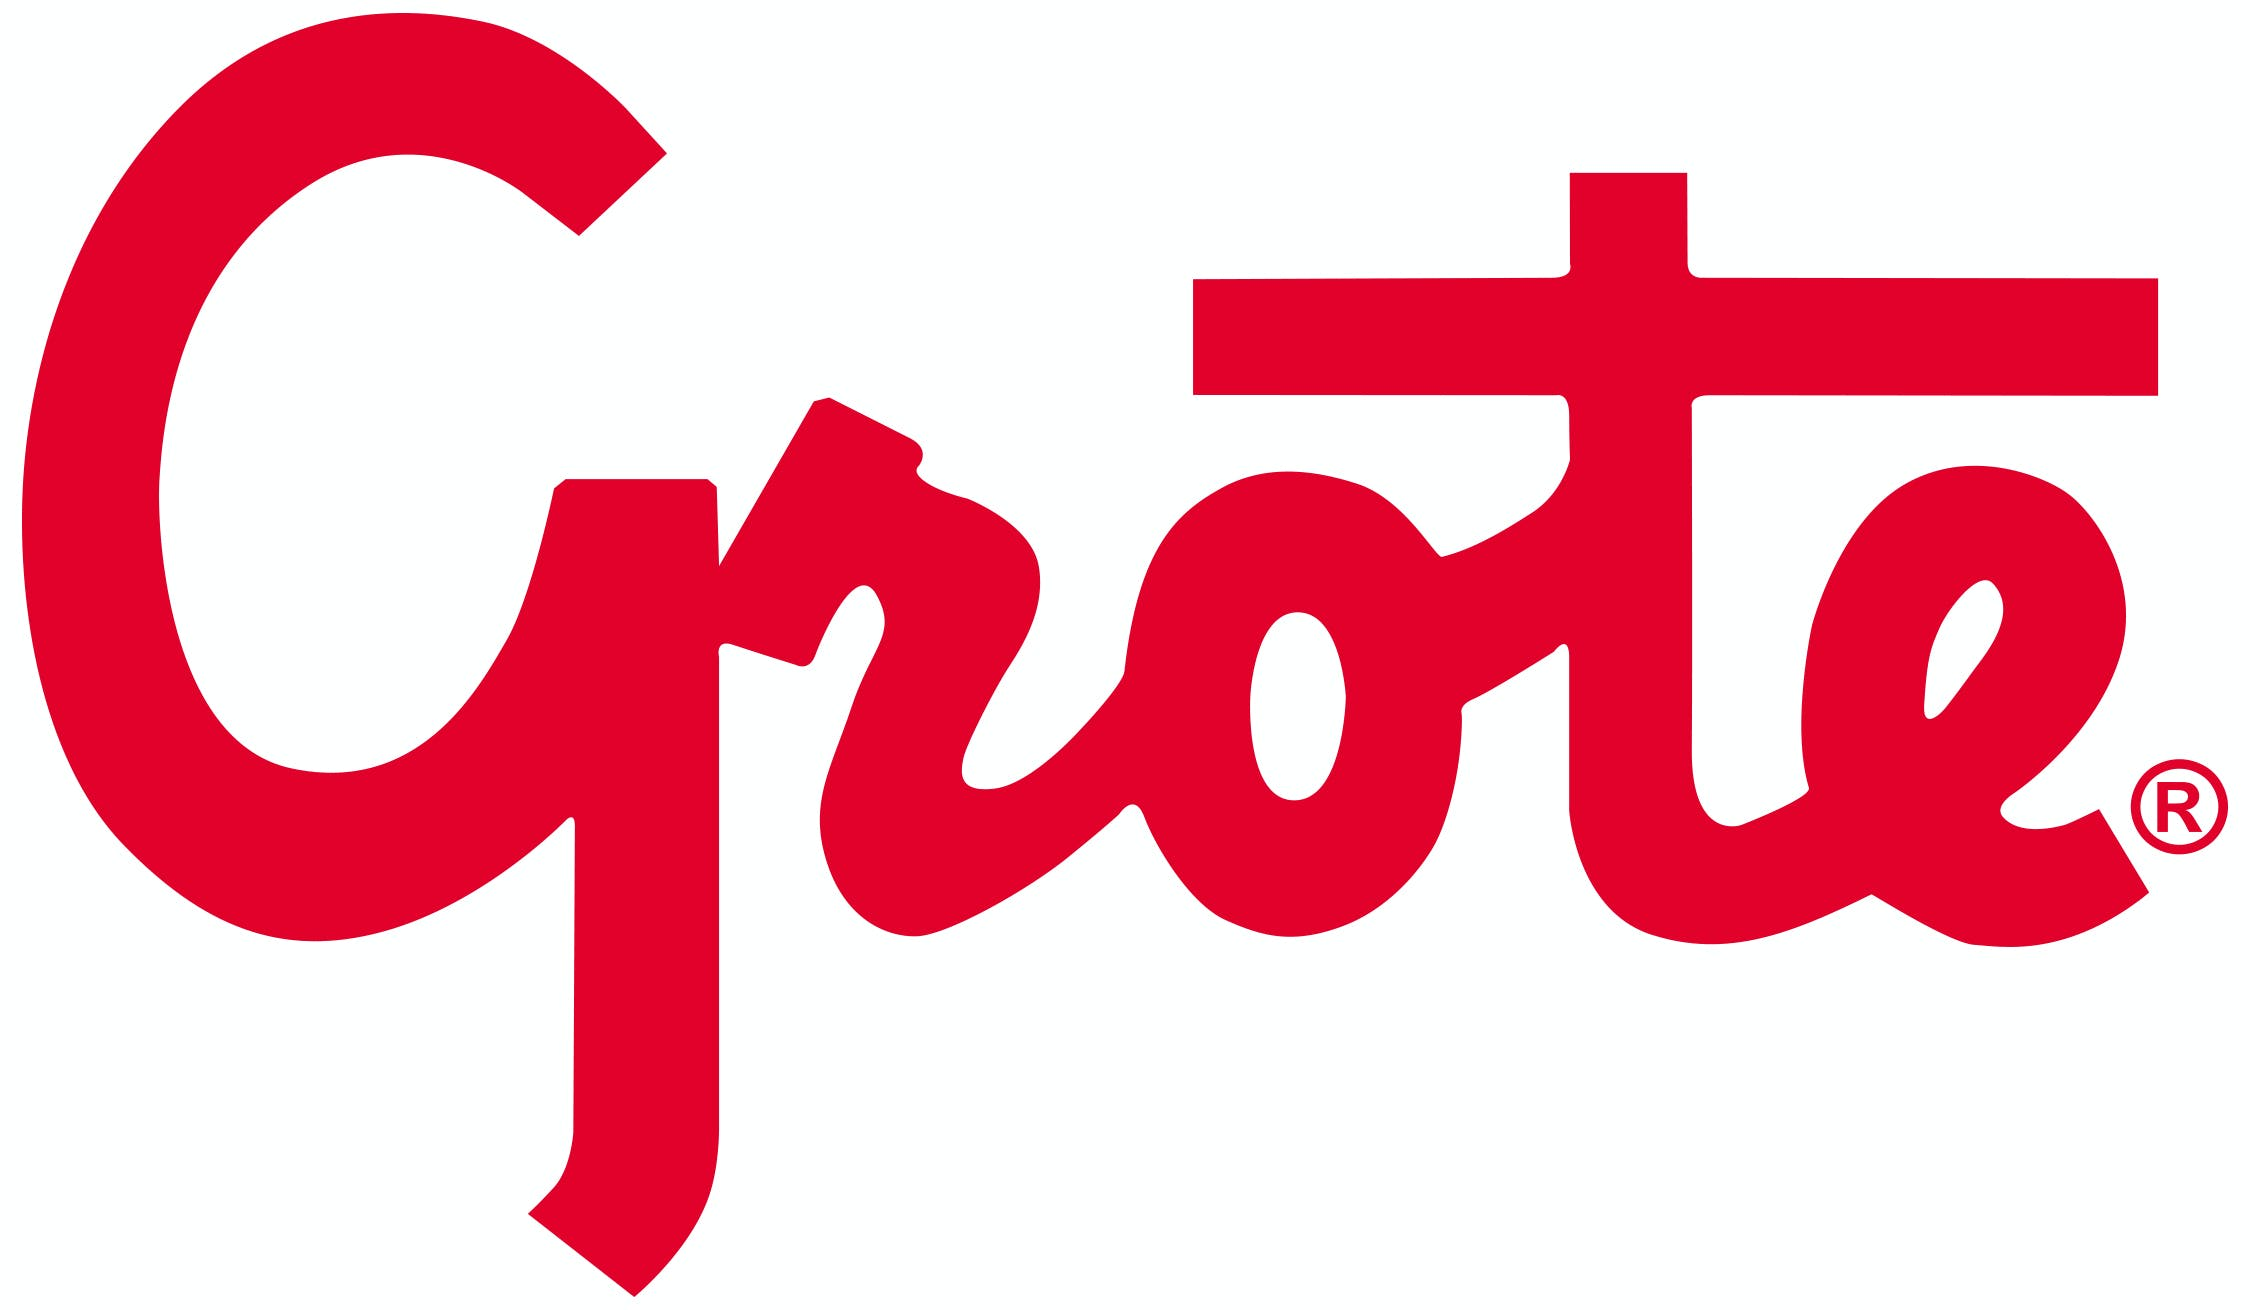 Grote Industries Inc.